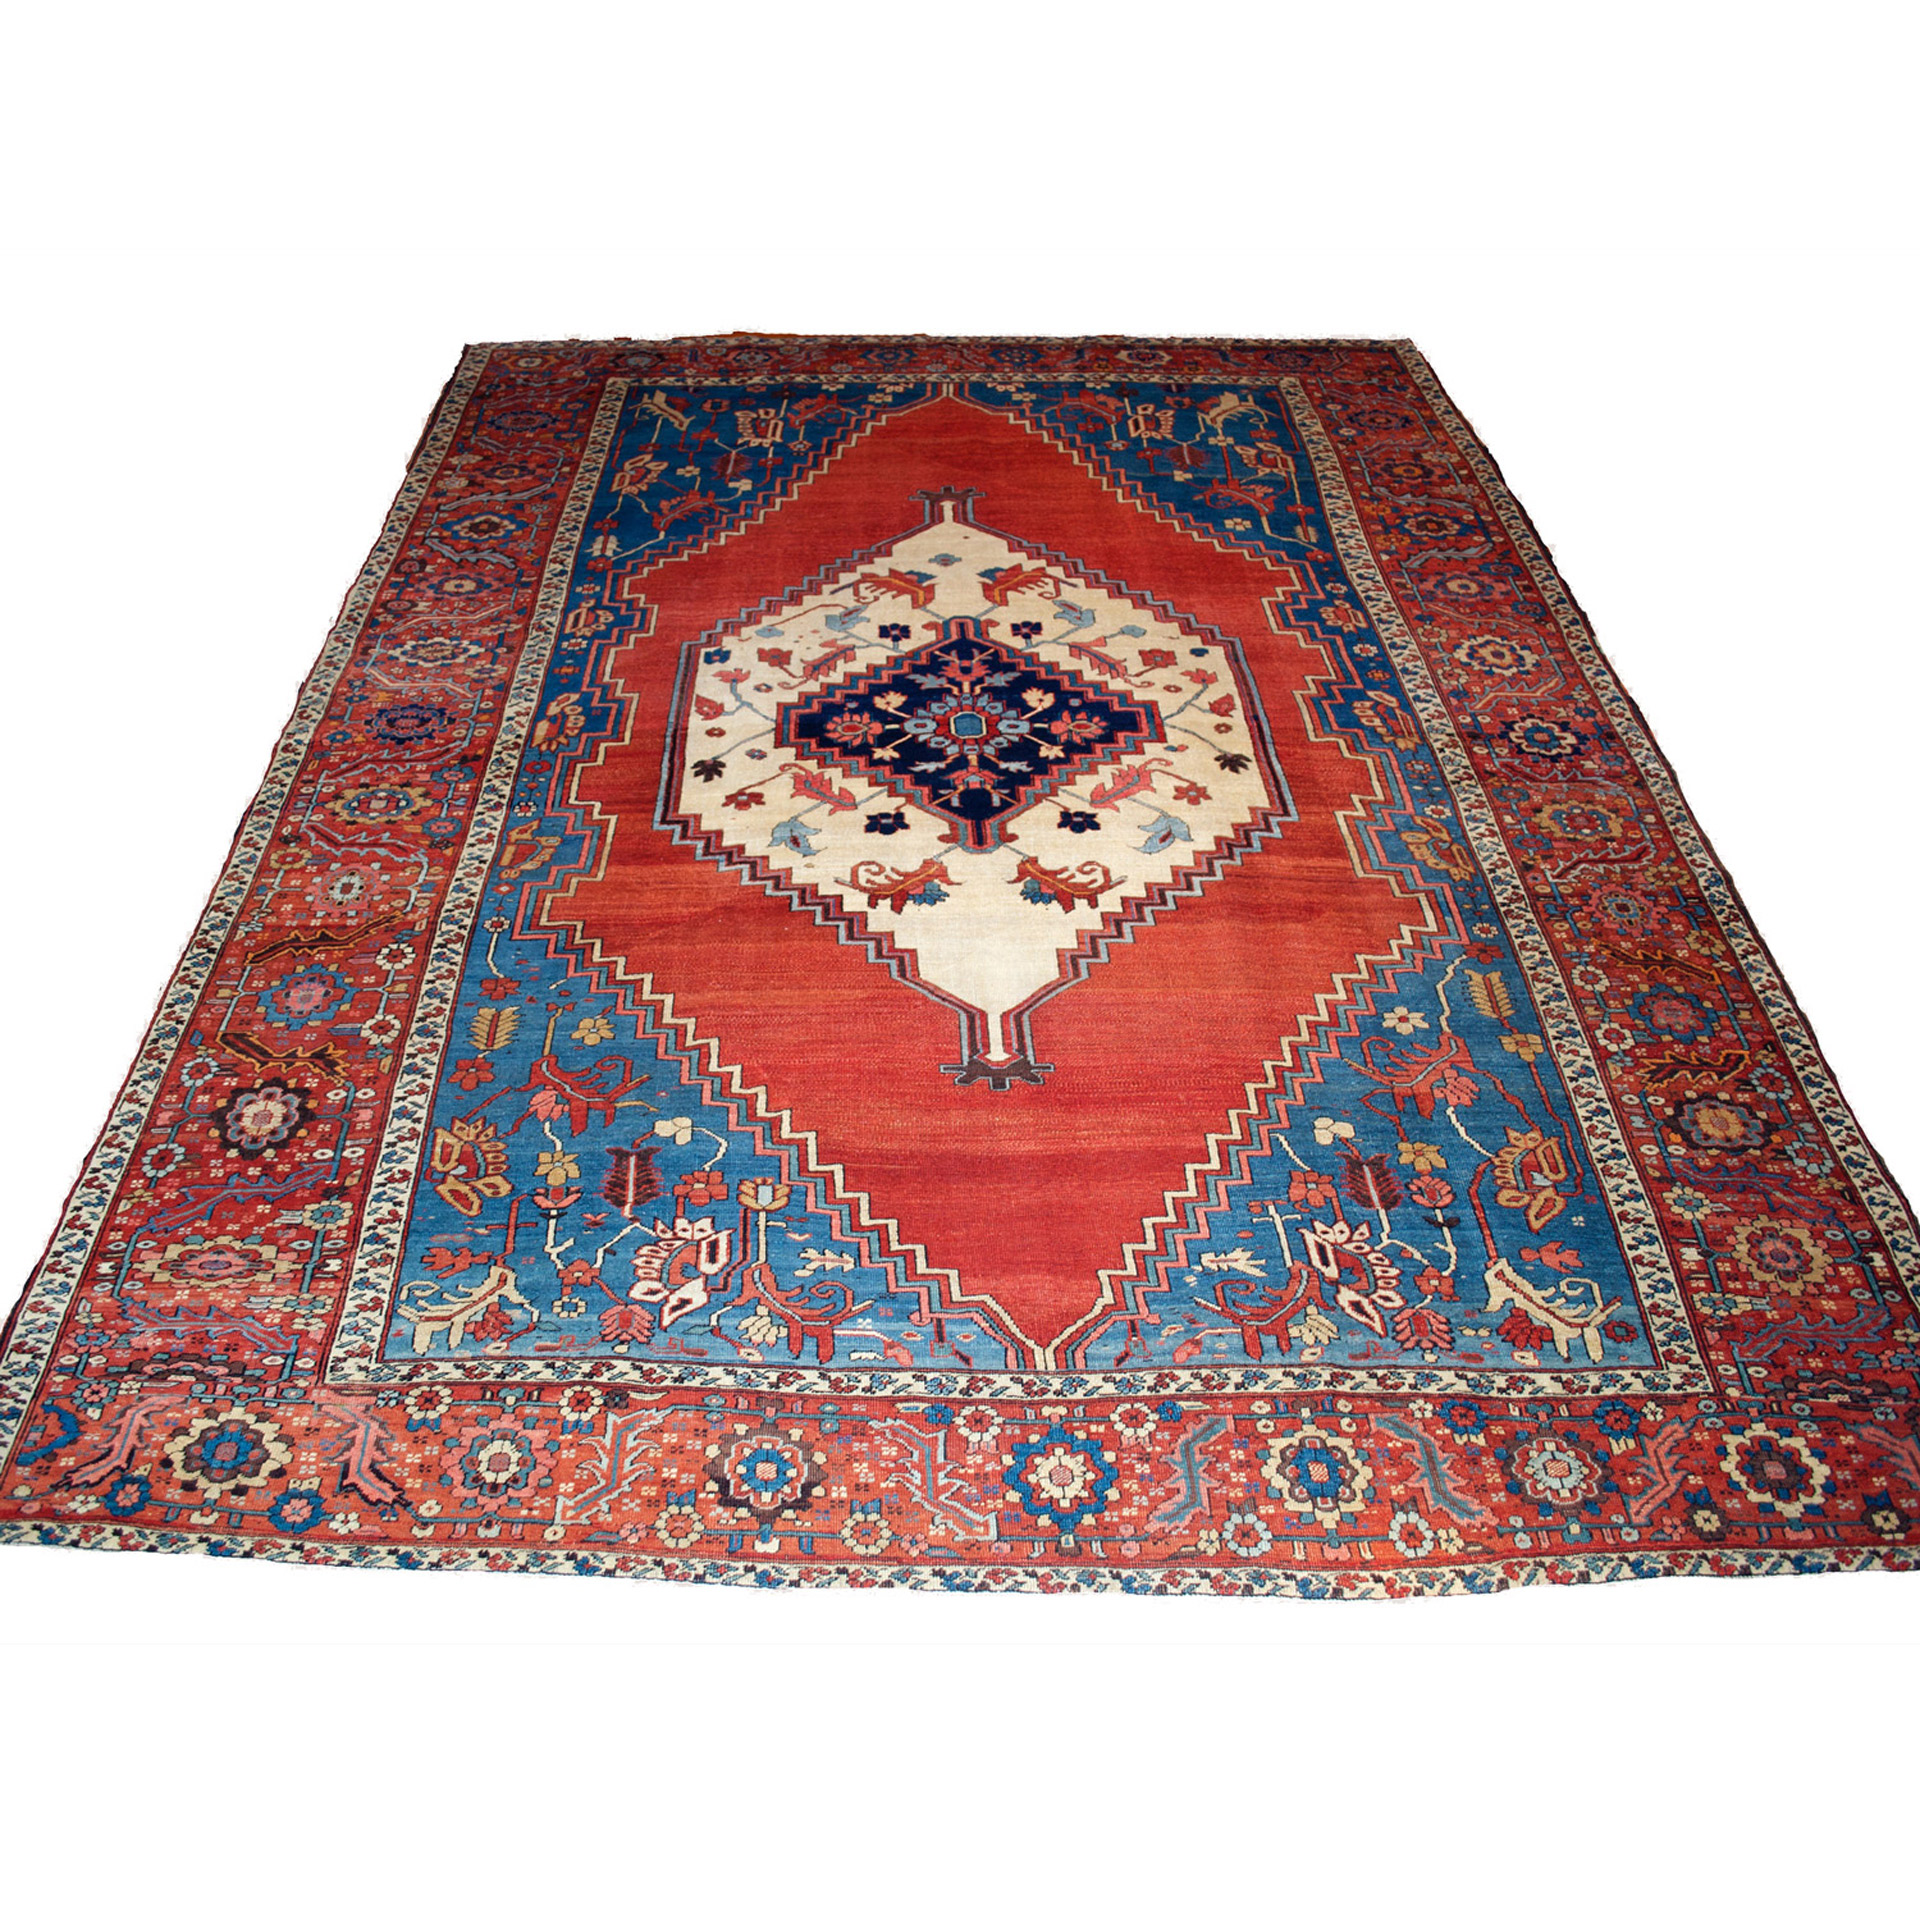 An antique Persian Bakshaish carpet from the Heriz district with an ivory medallion floating on a red open field, framed by sky blue spandrels and a brick red border